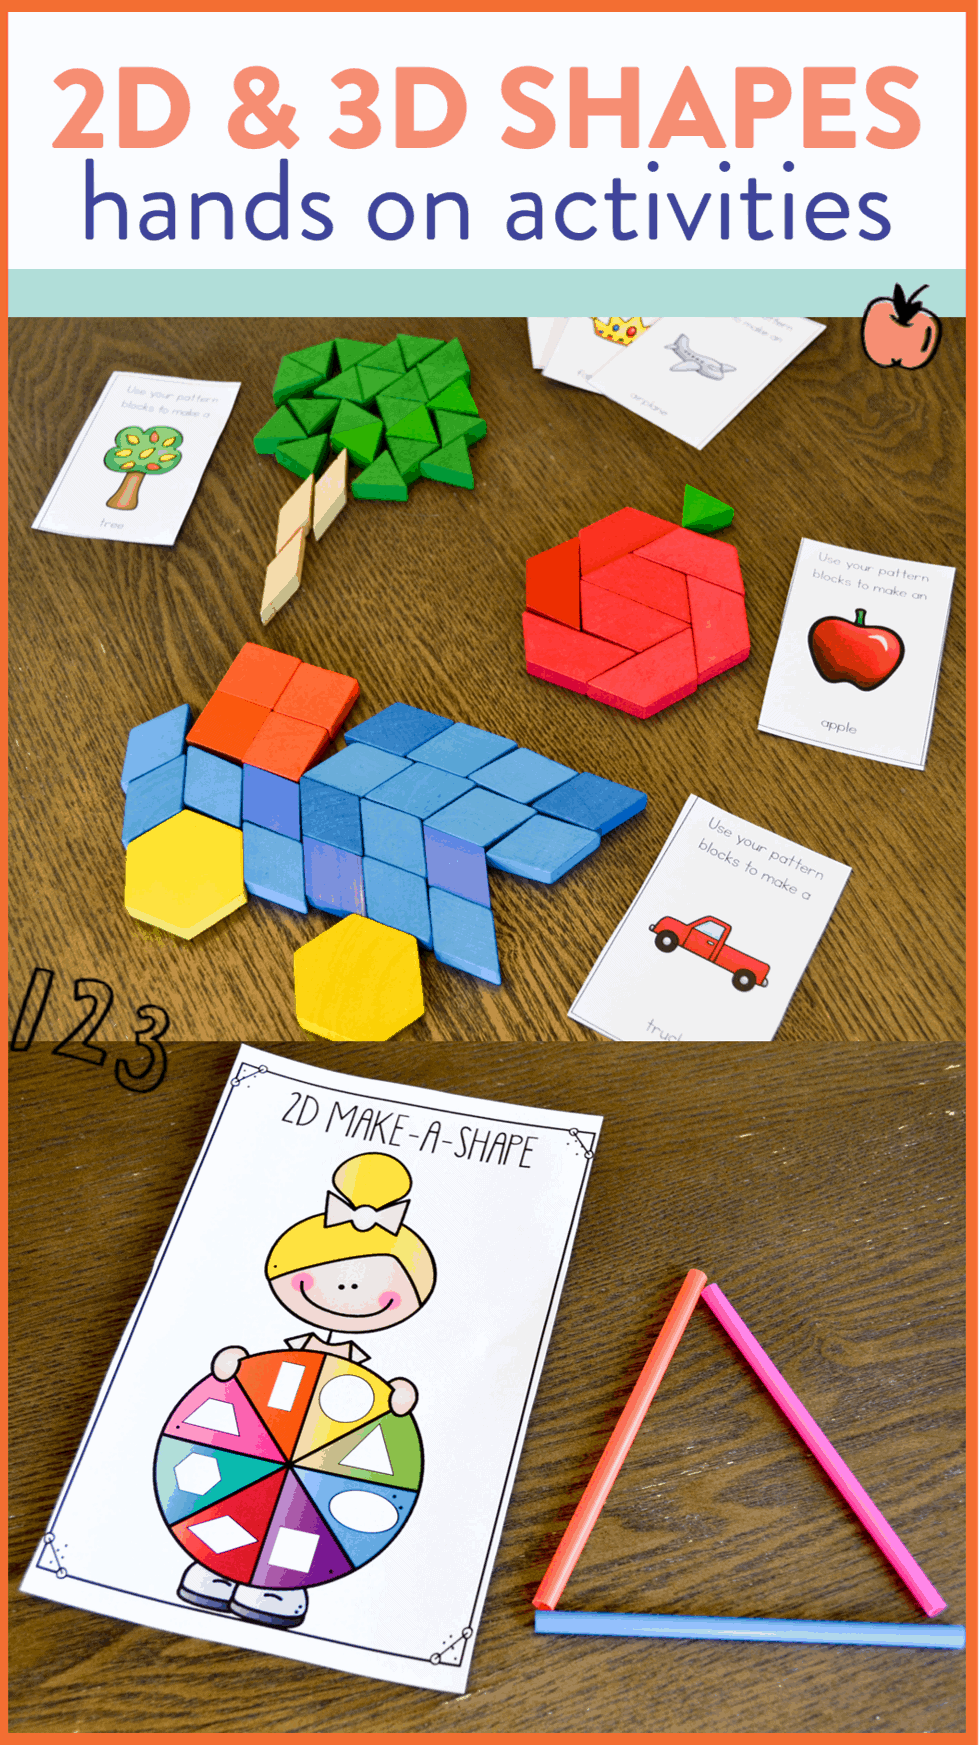 I'm always on the hunt for new and fun activities to teach 2D and 3D shapes. These games and hands on centers are perfect for kindergarten and first grade. Read all about the activities over on the blog!